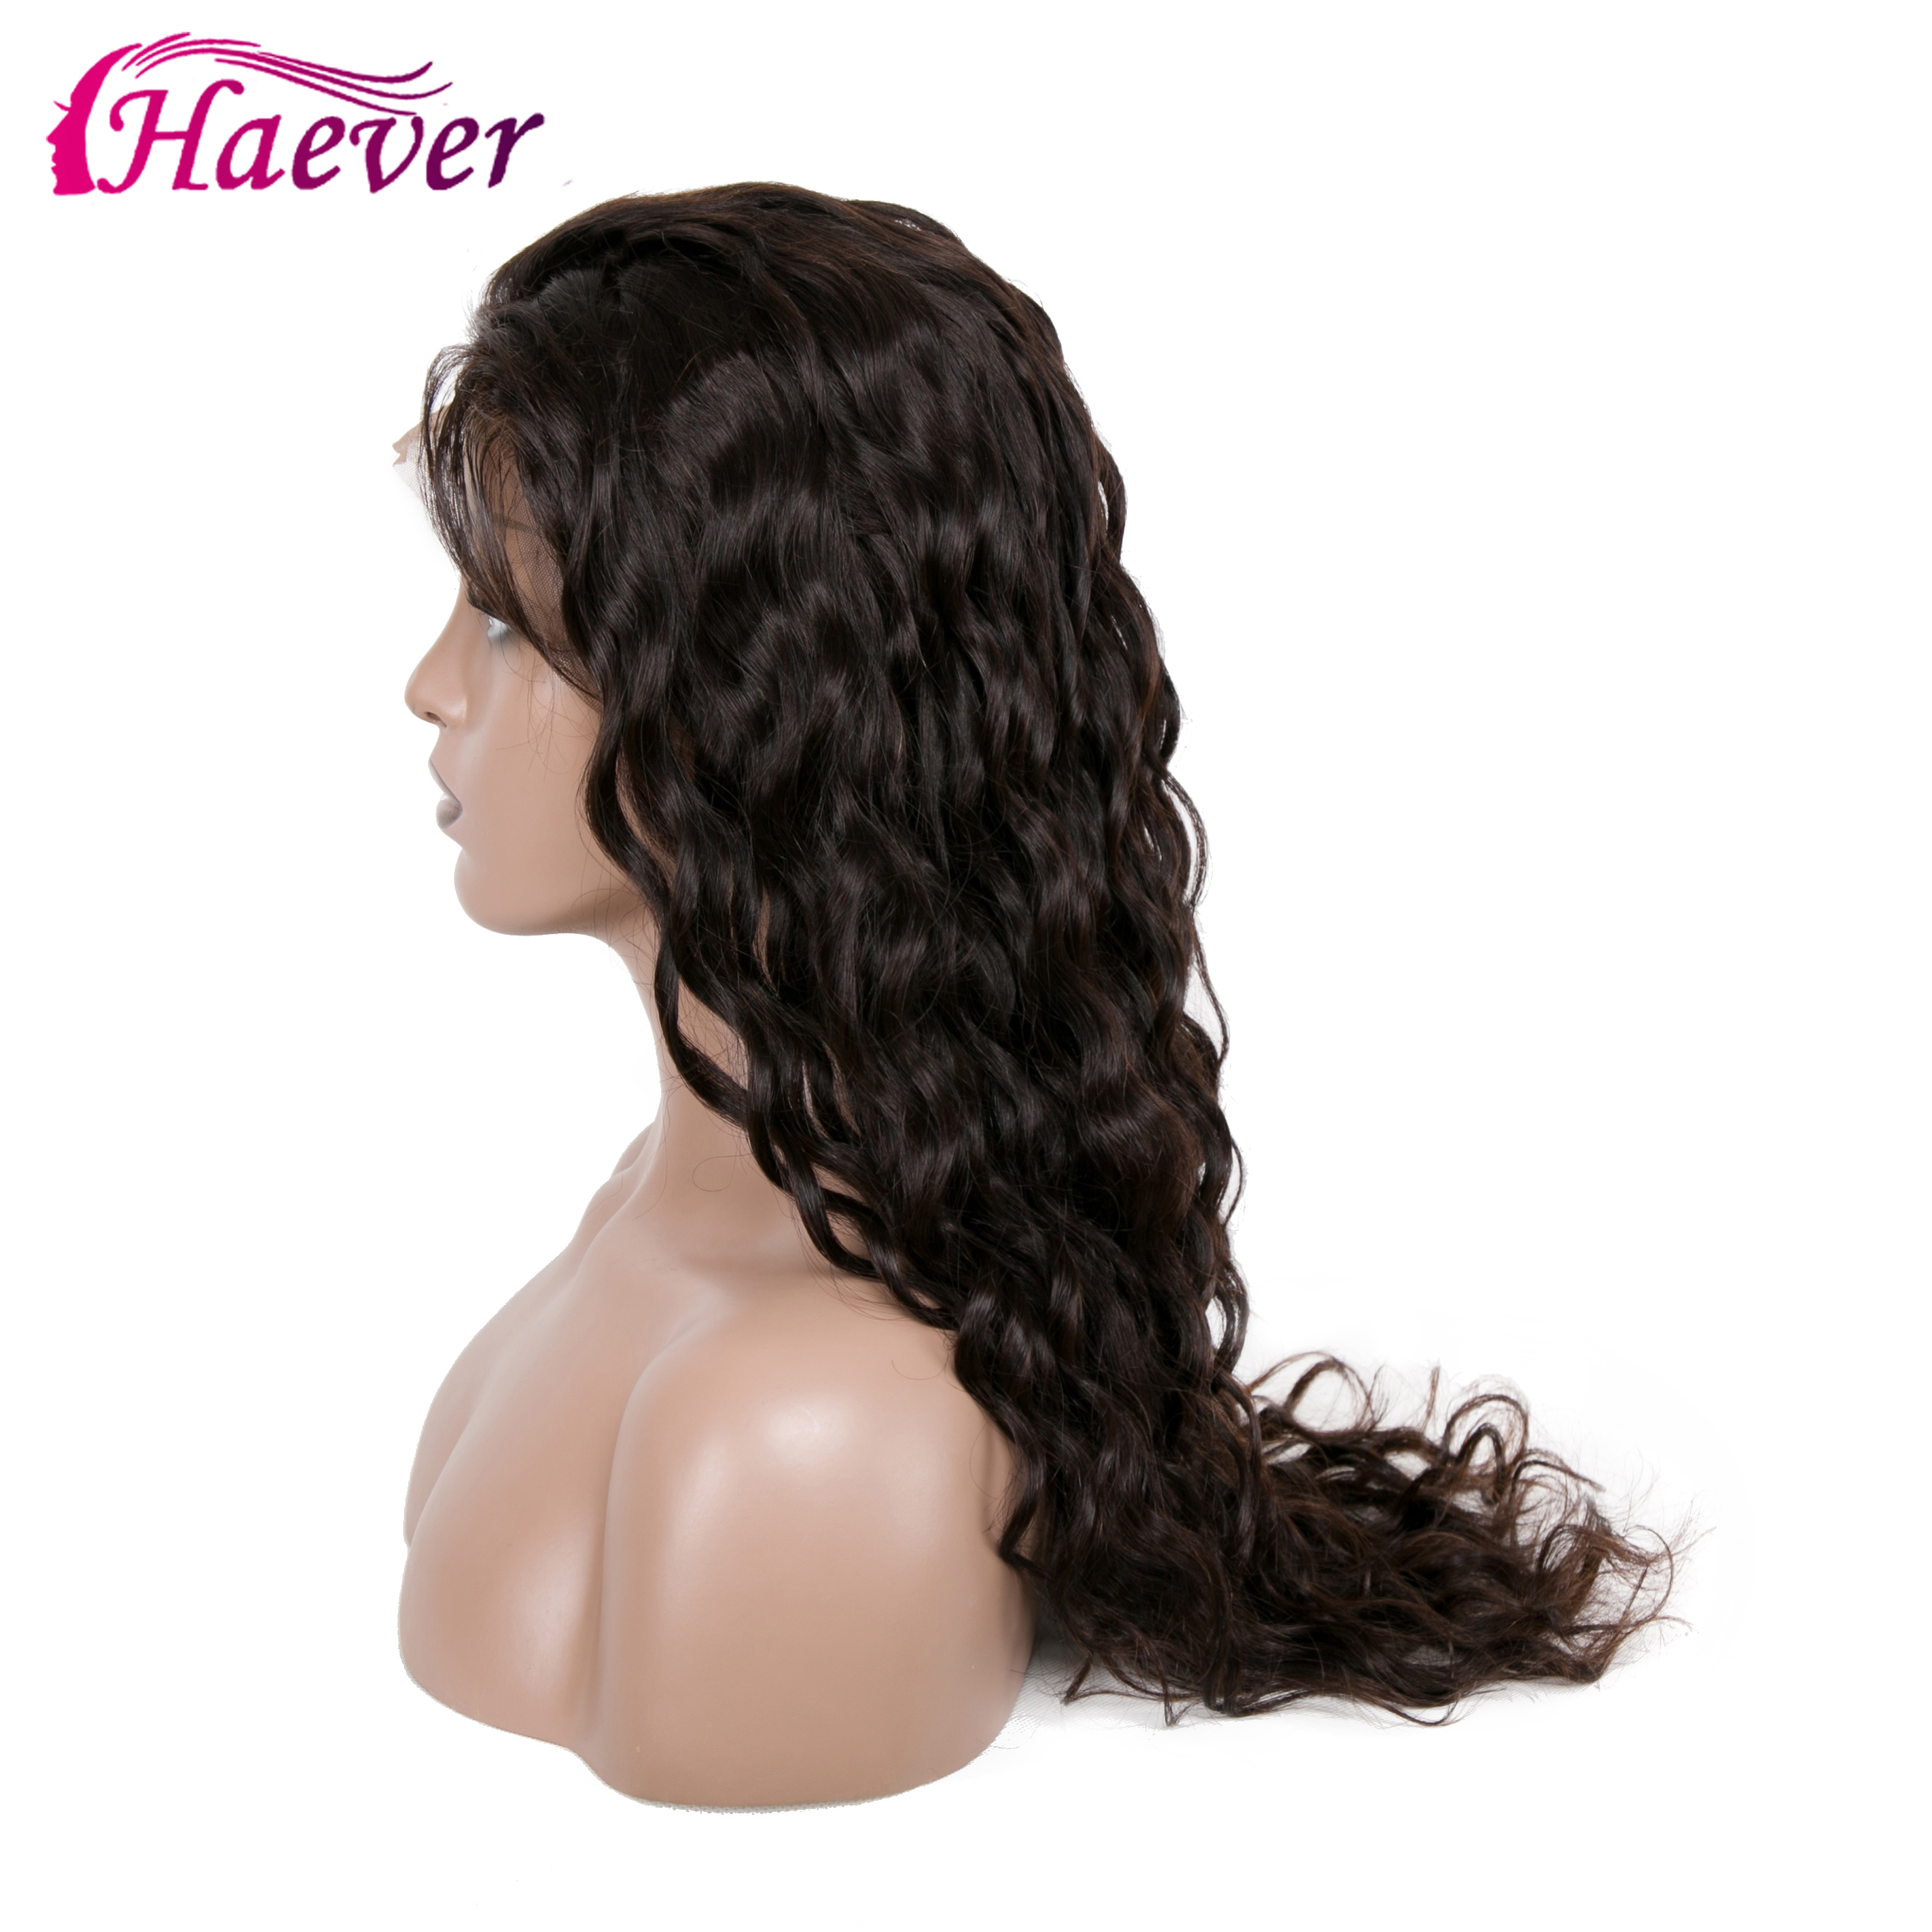 Haever 13X4 Lace Front Human Hair Wigs Water Wave PrePlucked Brazilian Remy Virgin New Hair Natural Wig 180 Density Frontal